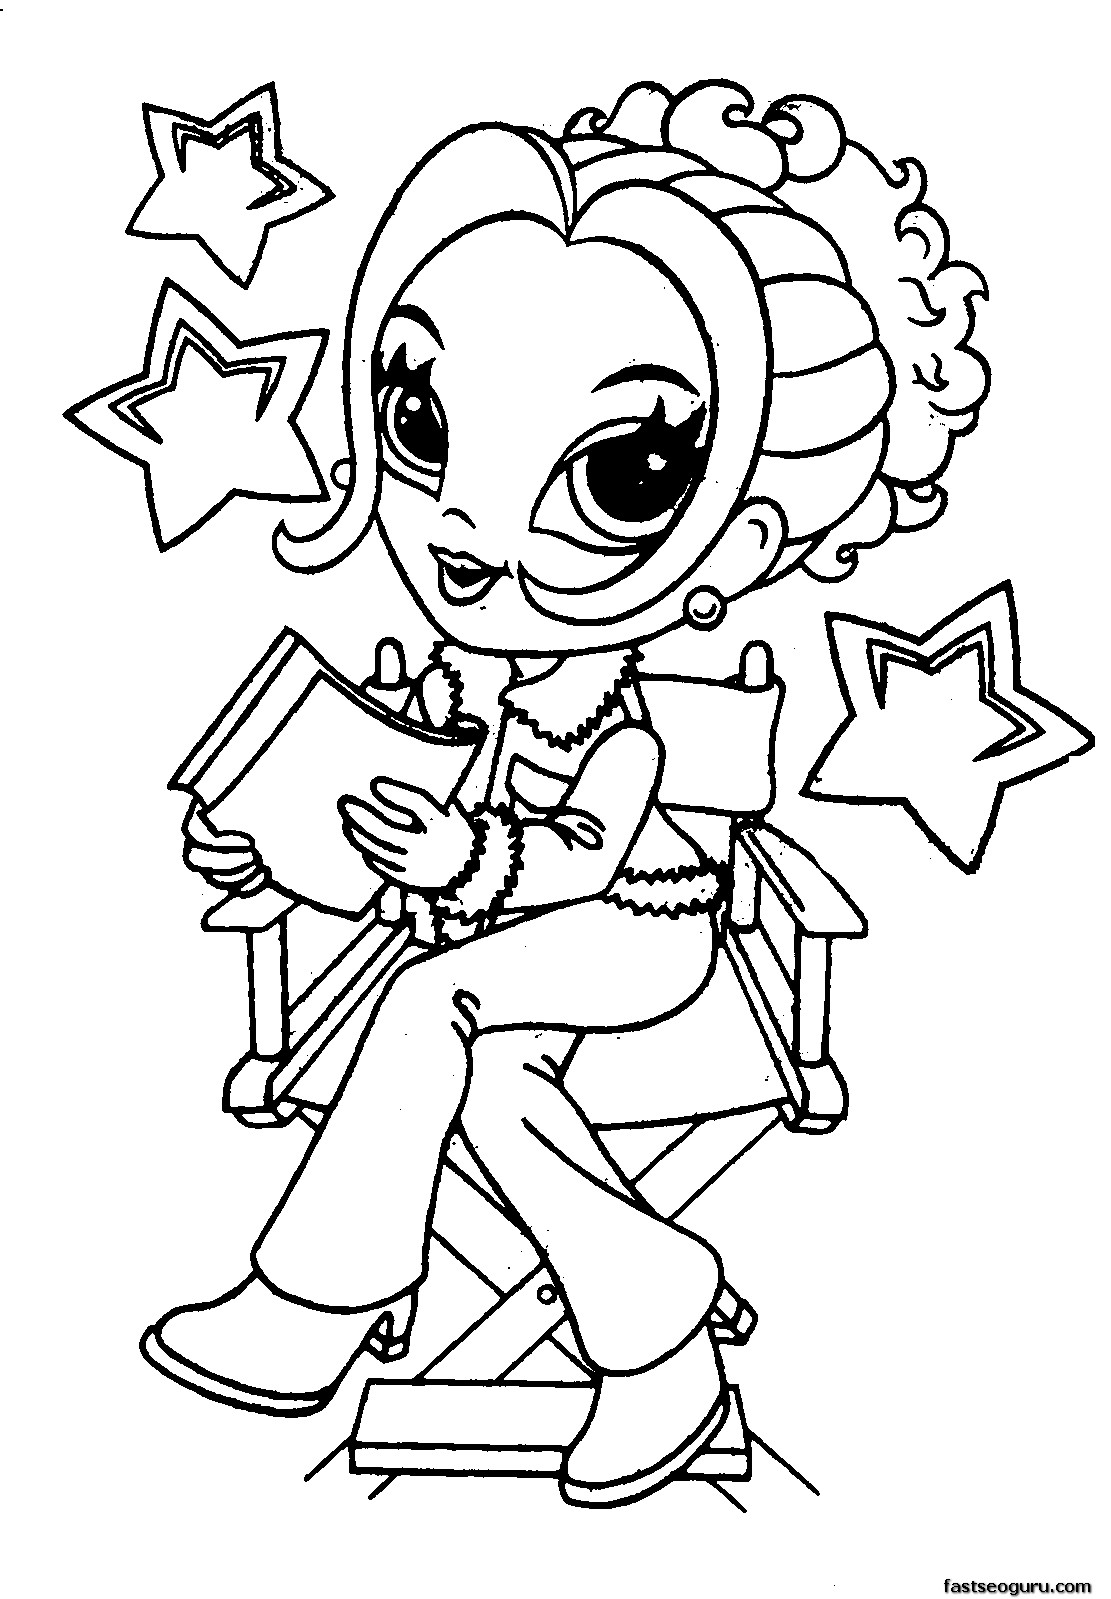 colouring pictures girls pin στον πίνακα Σχέδια pictures girls colouring